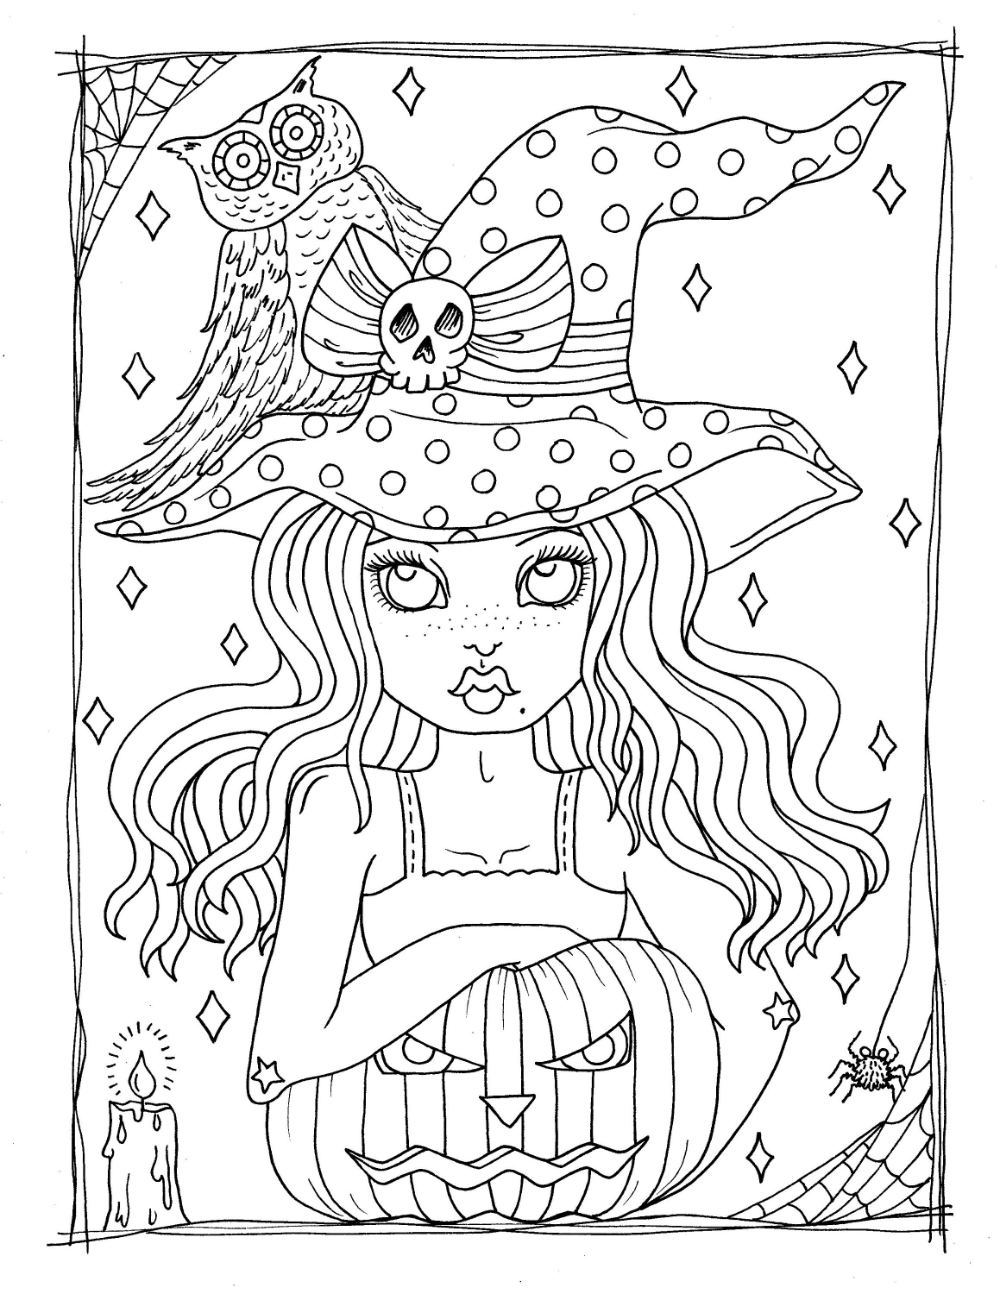 Little Witches Digital Coloring Book. Fun little witches